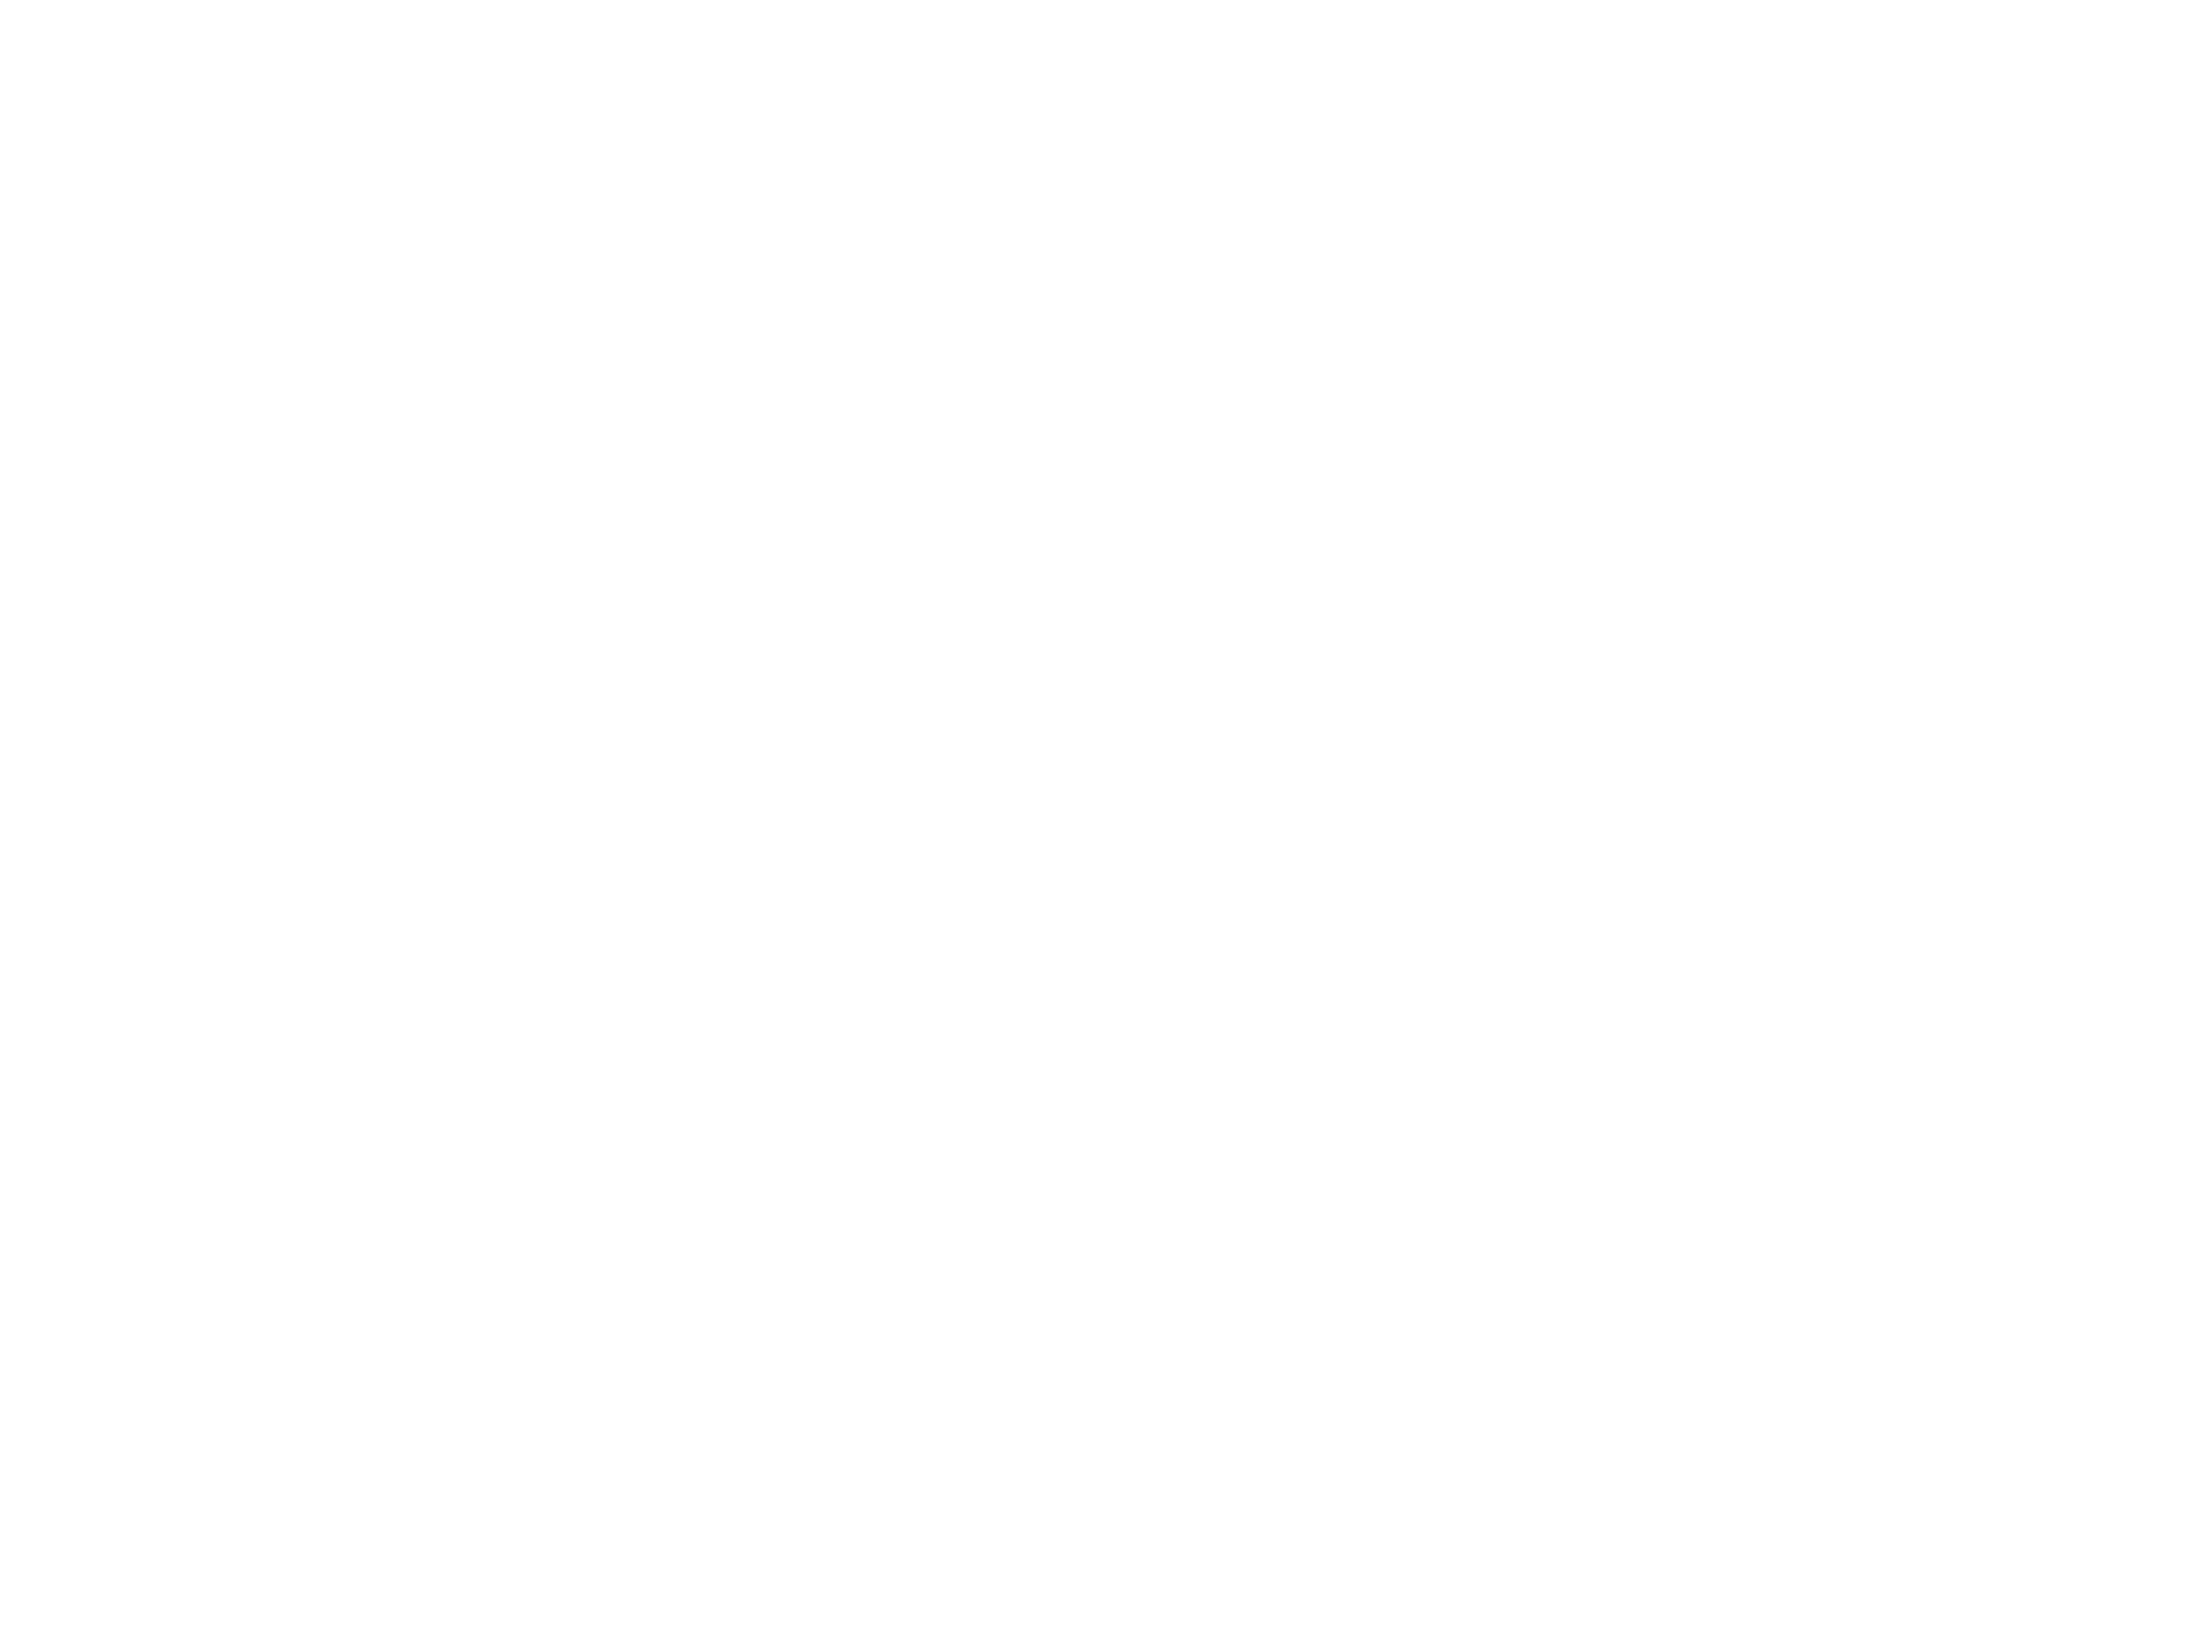 Universal Audio Logo - The Room